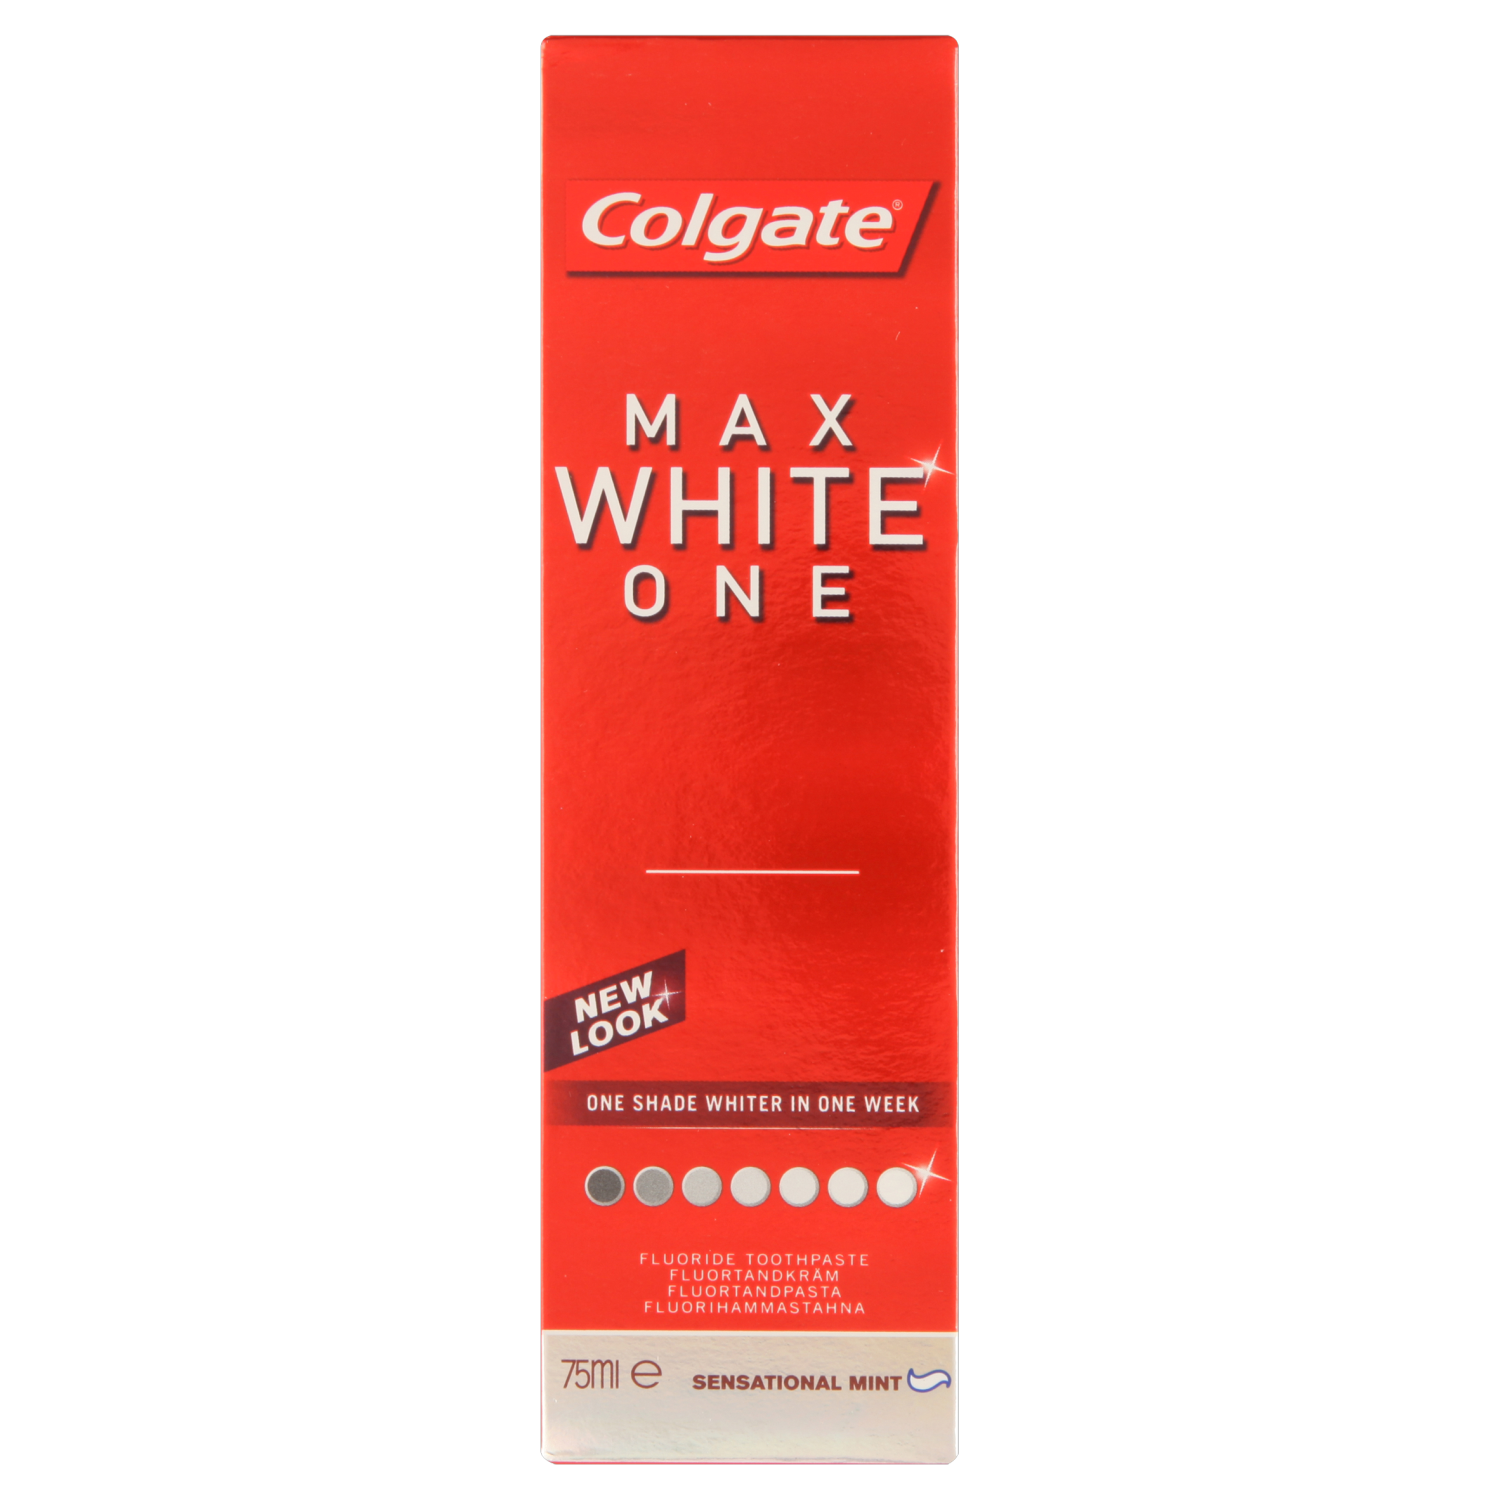 Colgate Max White One Tooth Paste